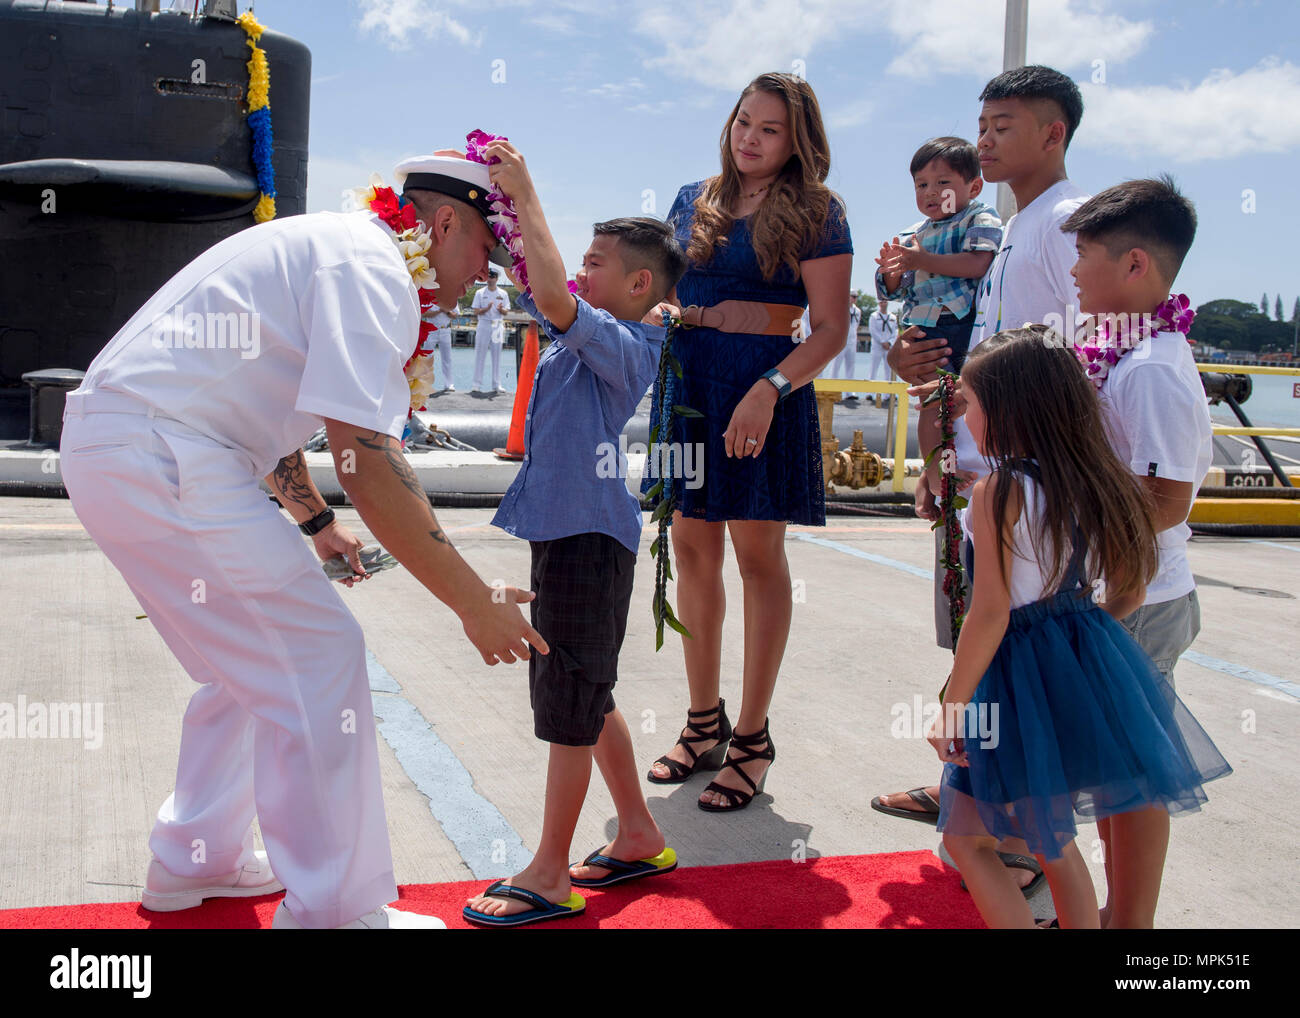 170323-N-LY160-0331 PEARL HARBOR, Hawaii (March 23, 2017) Chief Machinist's Mate (Nuclear) Kalani Eli, a native of Zuni, New Mexico, is greeted by his family on the submarine piers in Joint Base Pearl Harbor-Hickam. The Los Angeles-class fast-attack submarine USS Louisville (SSN 724) successfully completed a six-month deployment to the Western Pacific Ocean. (U.S. Navy photo by Mass Communication Specialist 2nd Class Michael H. Lee/Released) - Stock Image